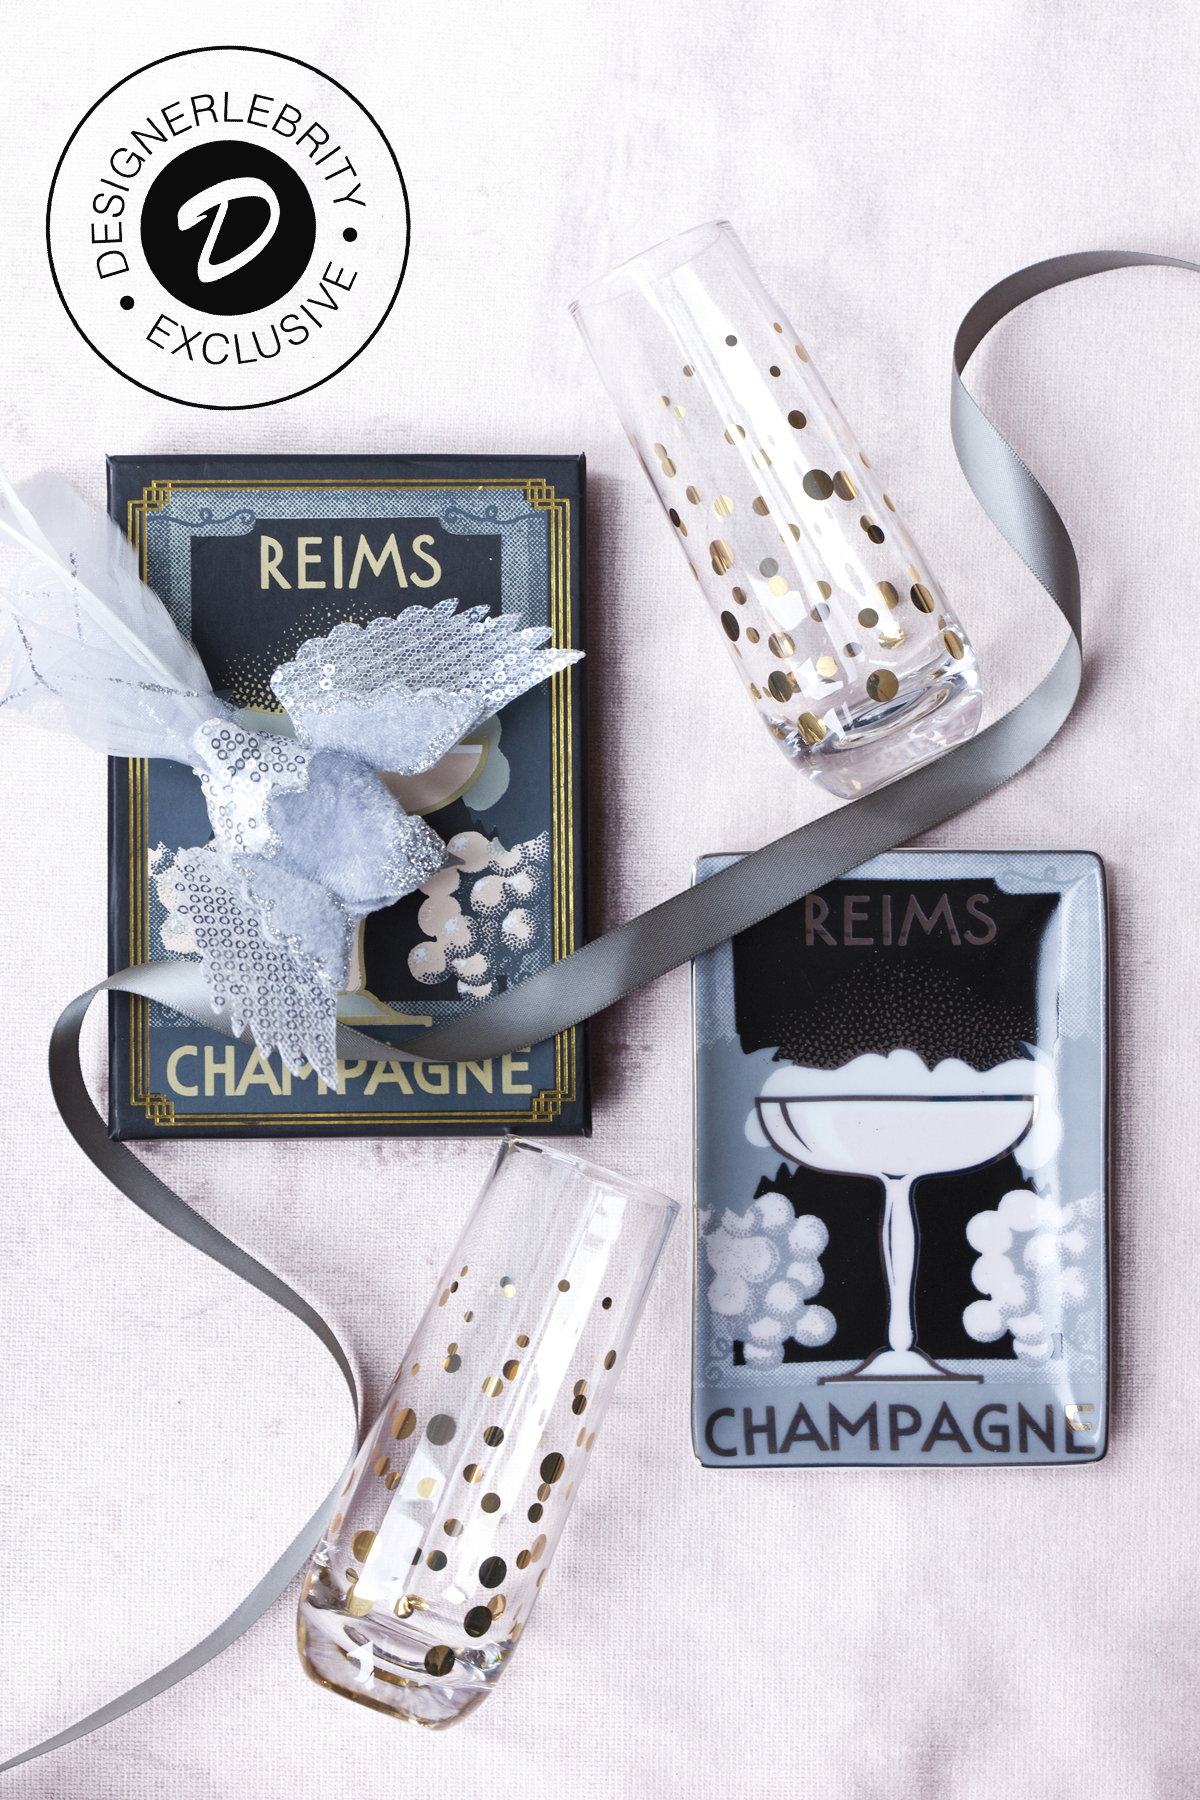 C&V BOX STANDARD INCLUDES: - ~ Two (2) Stemless Champagne Flutes by Abbott~ One (1) Reims Champagne Tray by Rosanna~ One (1) Velvet Bird Ornament by Abbott~ One (1) House and Home Magazine Dec IssuePrice: $43 (approximately USD) $54.95 Canadian